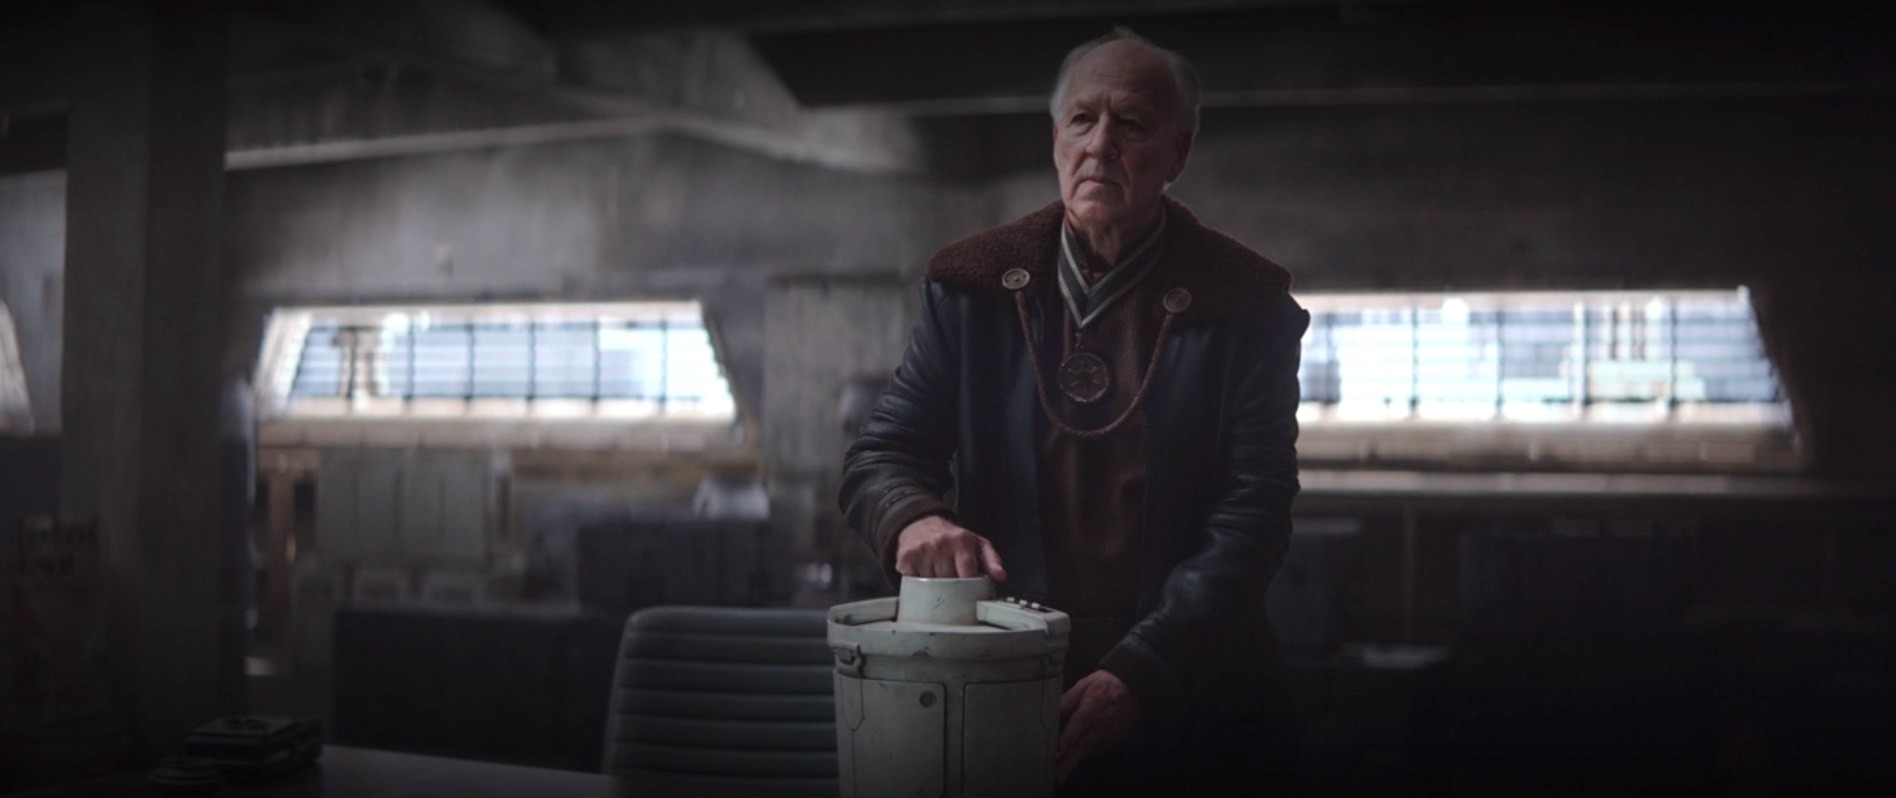 the client holds a camtono aka an ice cream maker on a table in star wars: the mandalorian